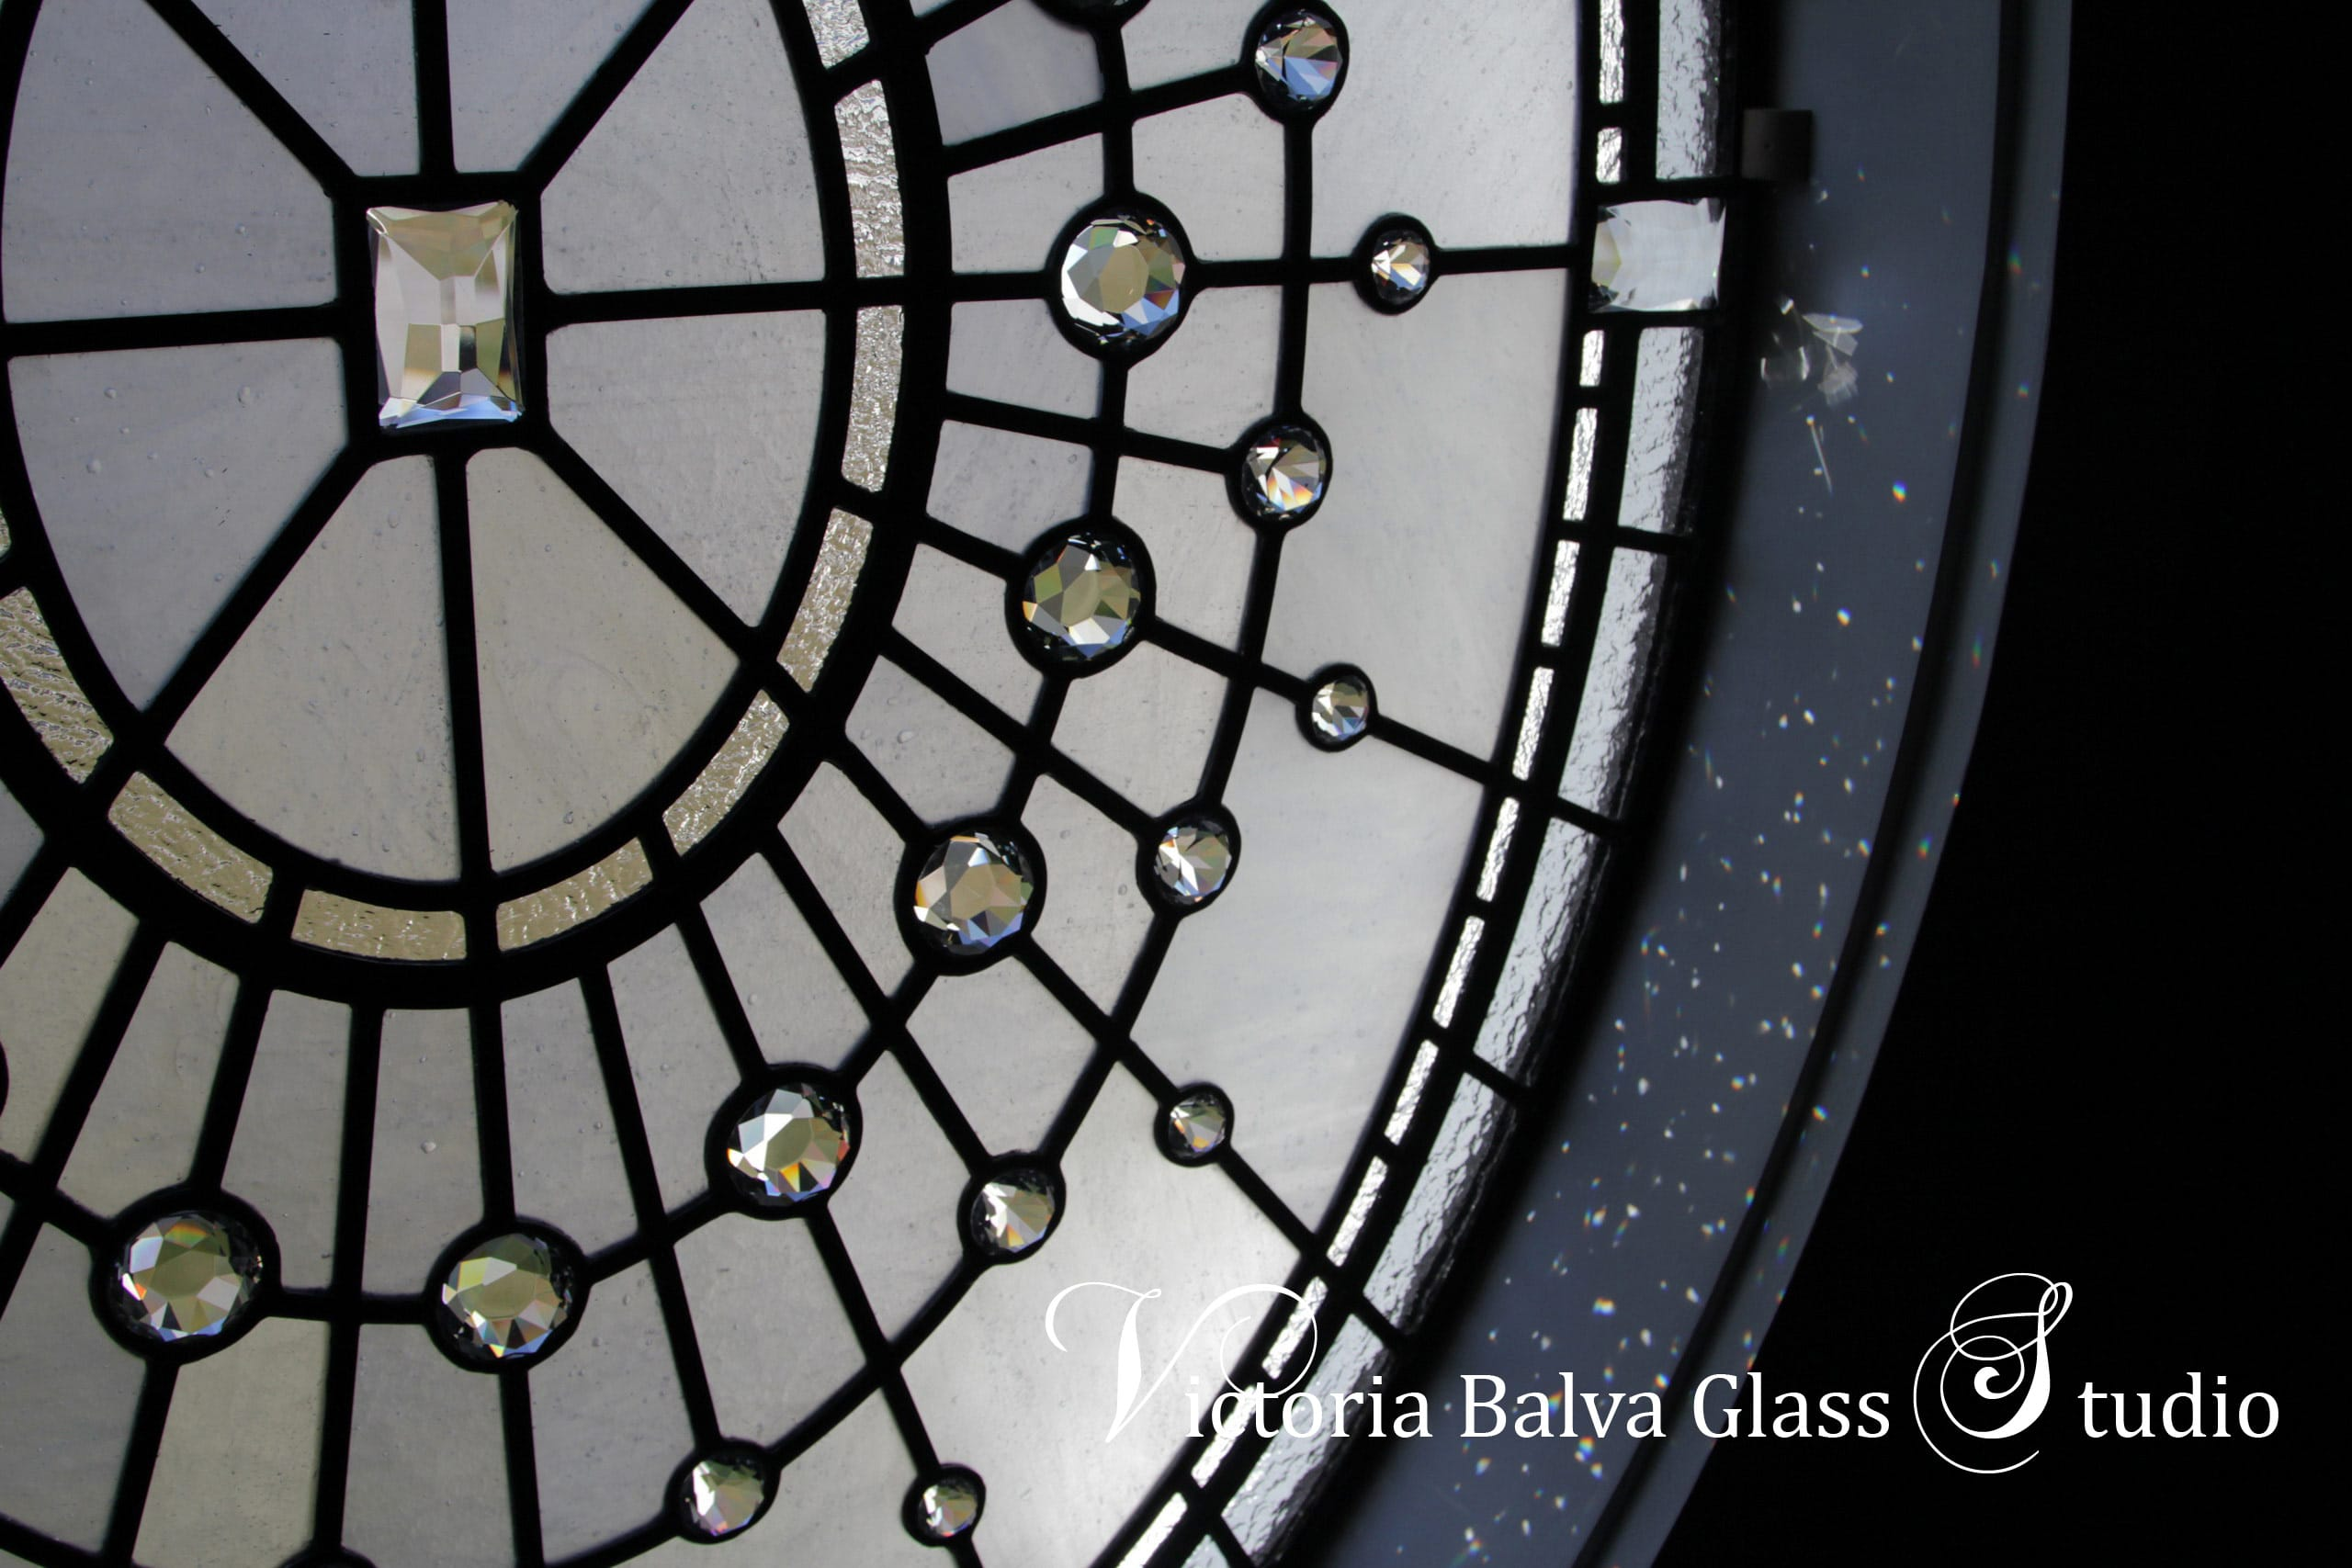 Large oval stained leaded glass window design w crystal jewels for staircase of custom built residence in Washington DC. Glass diamonds refract the light into many tiny rainbows. Clear textured glass, various size glass diamonds. Stained leaded glass oval window design by glass artist Victoria Balva